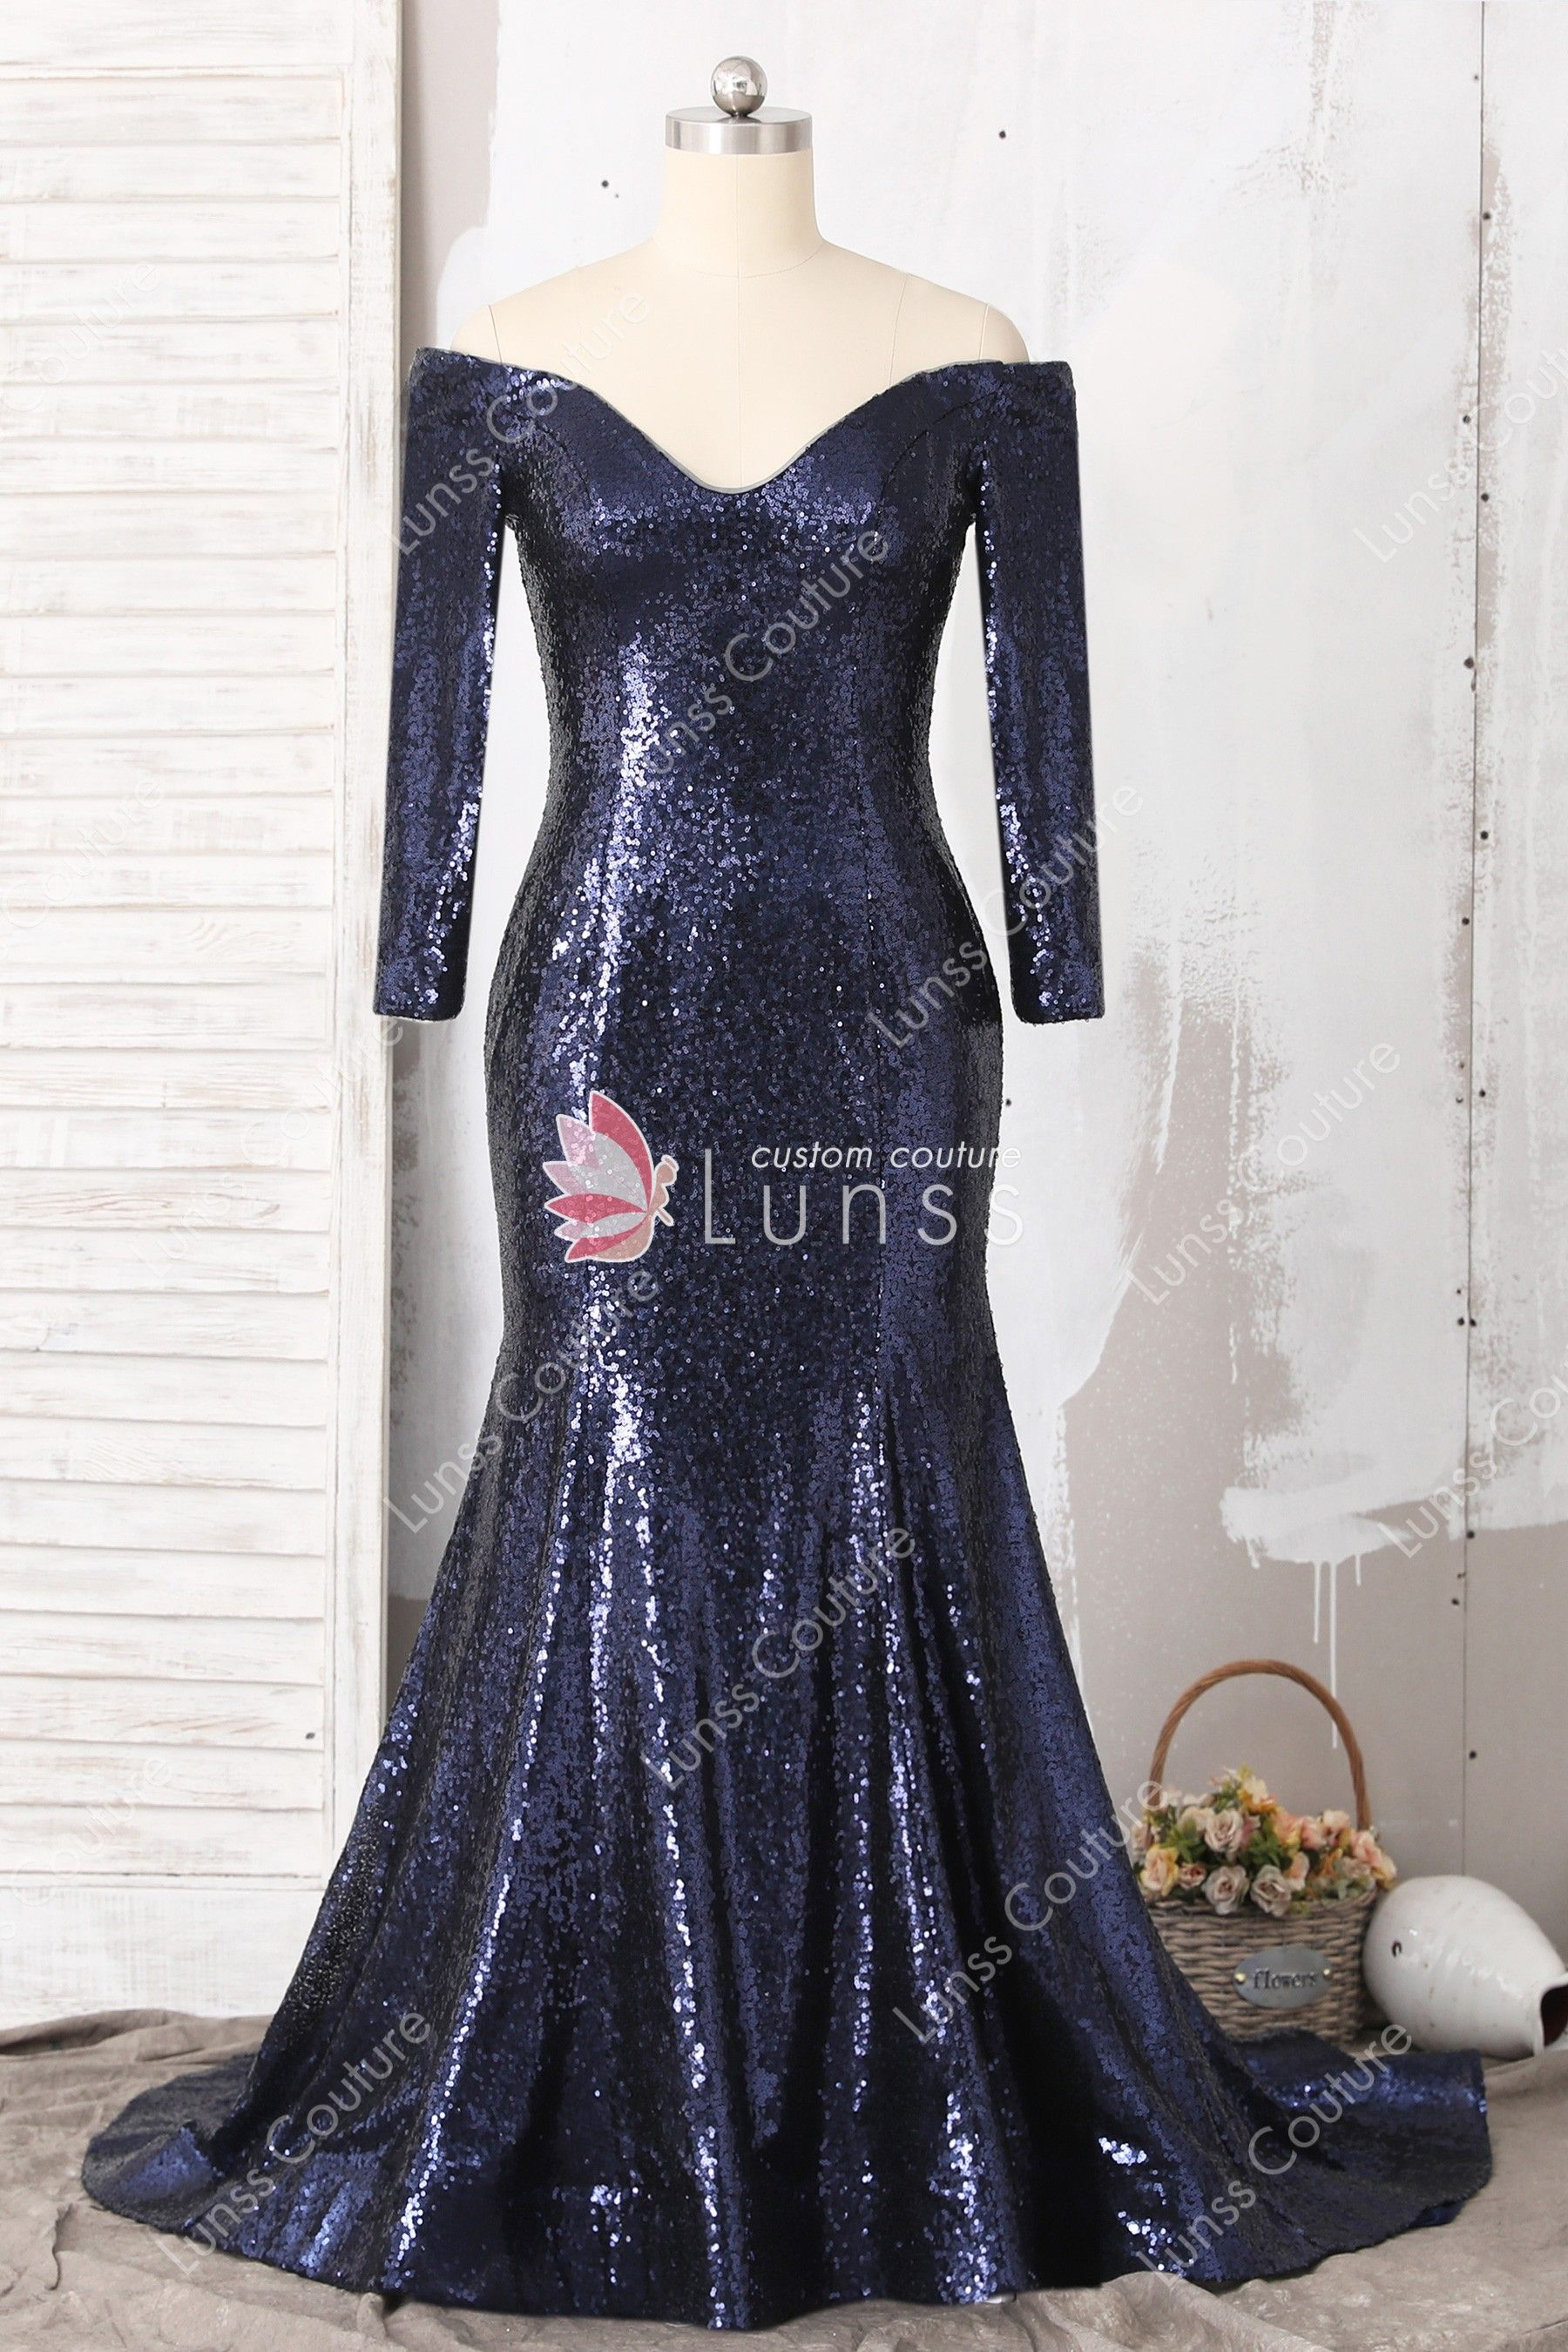 cf84be7f545 It will be a great choice for prom party or other special occasion. Find  this Pin and more on Lunss Formal Dresses by Lunss Couture.